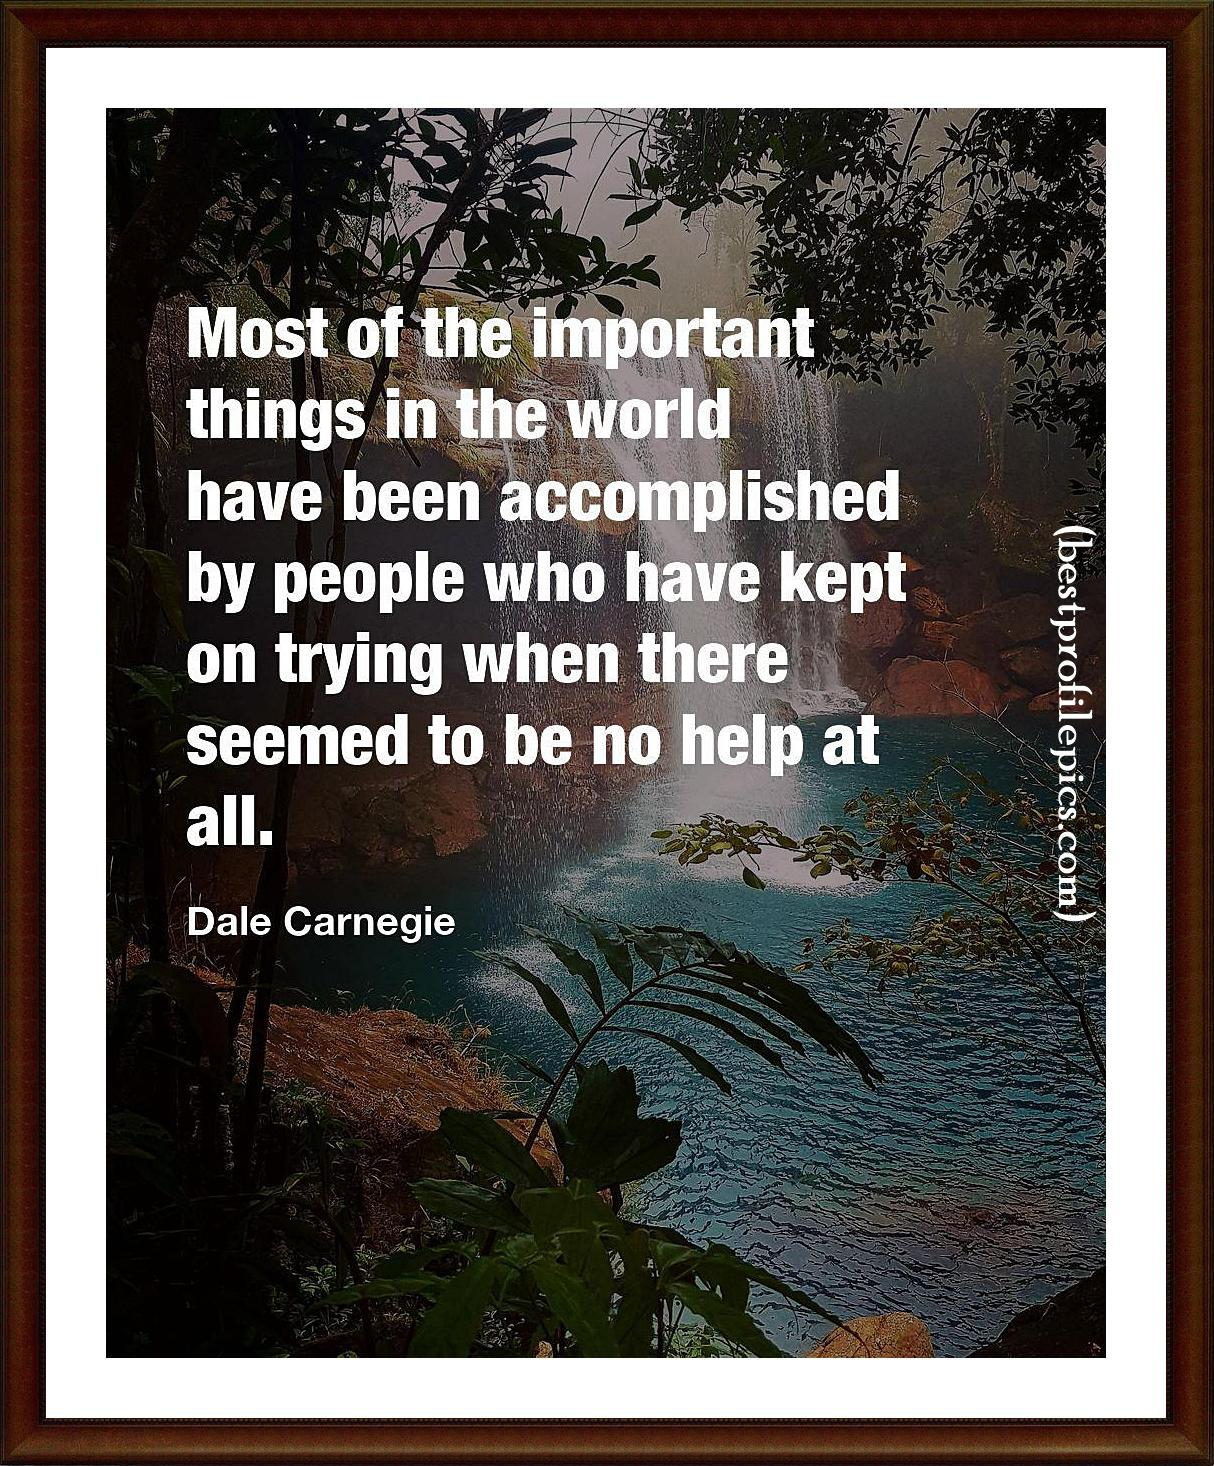 dale carnegie quotes start living